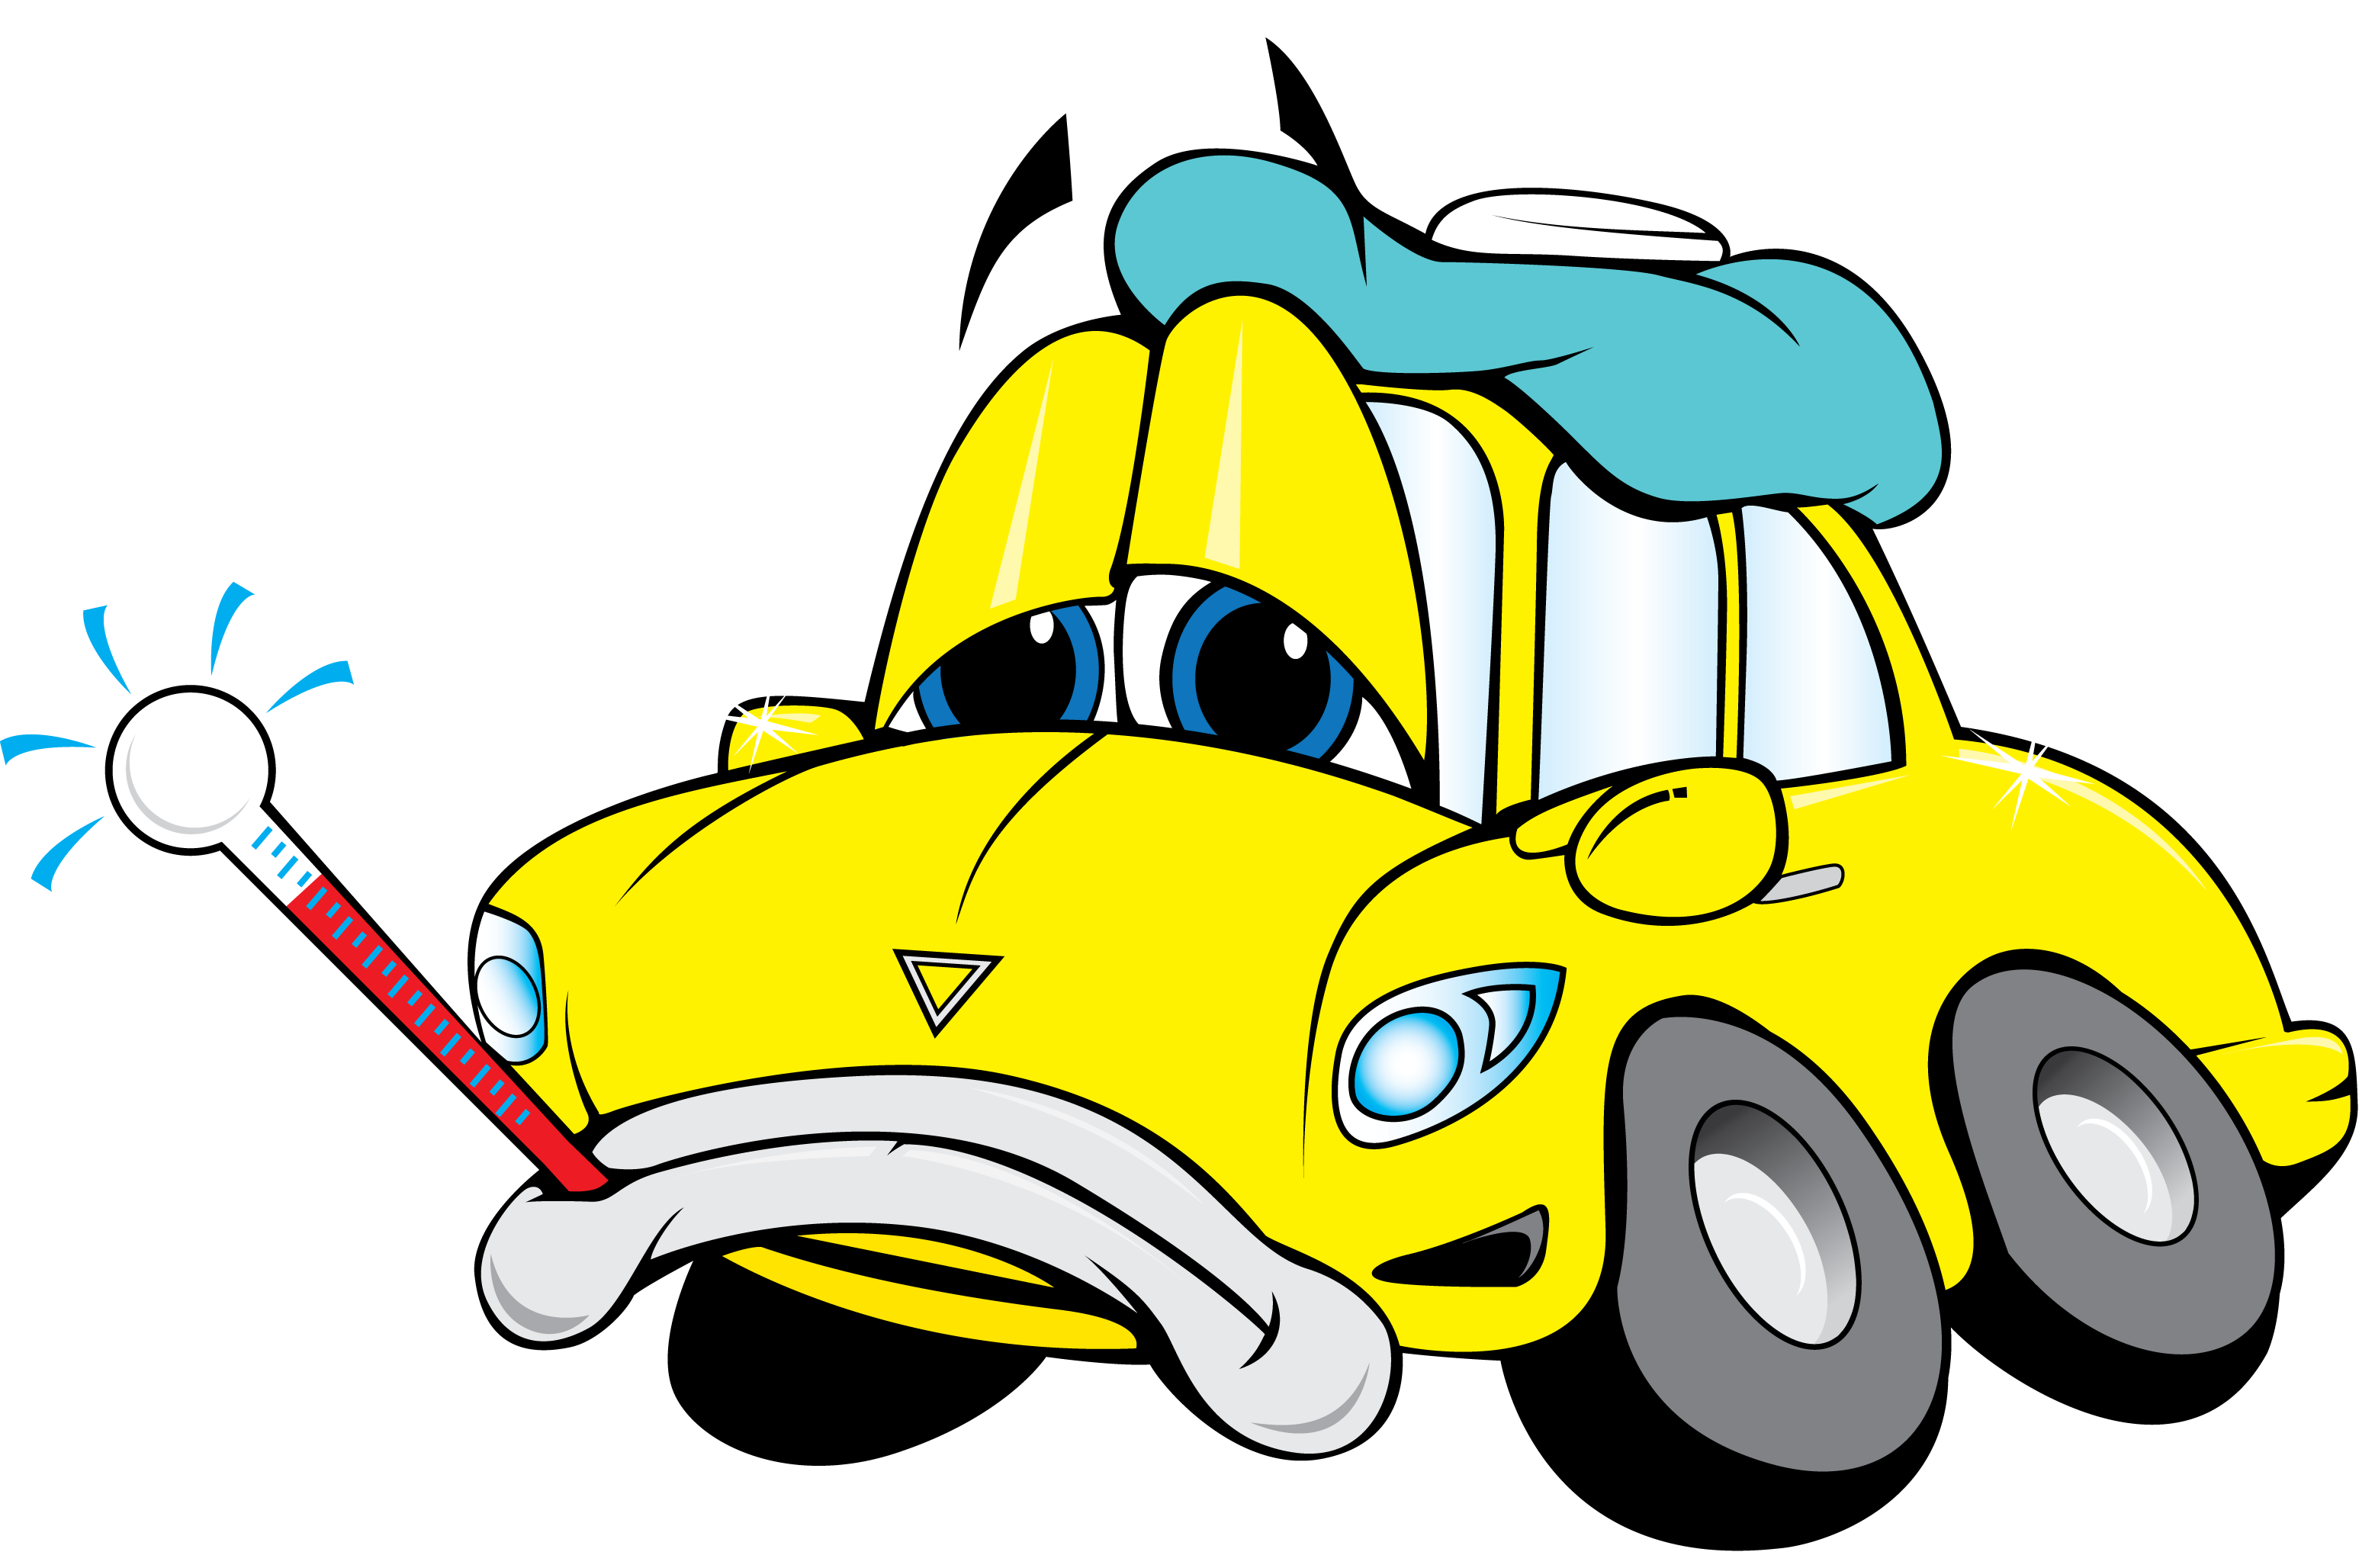 Car stopping clipart black and white stock Anthem Opinions: Why Didn't I Think of That